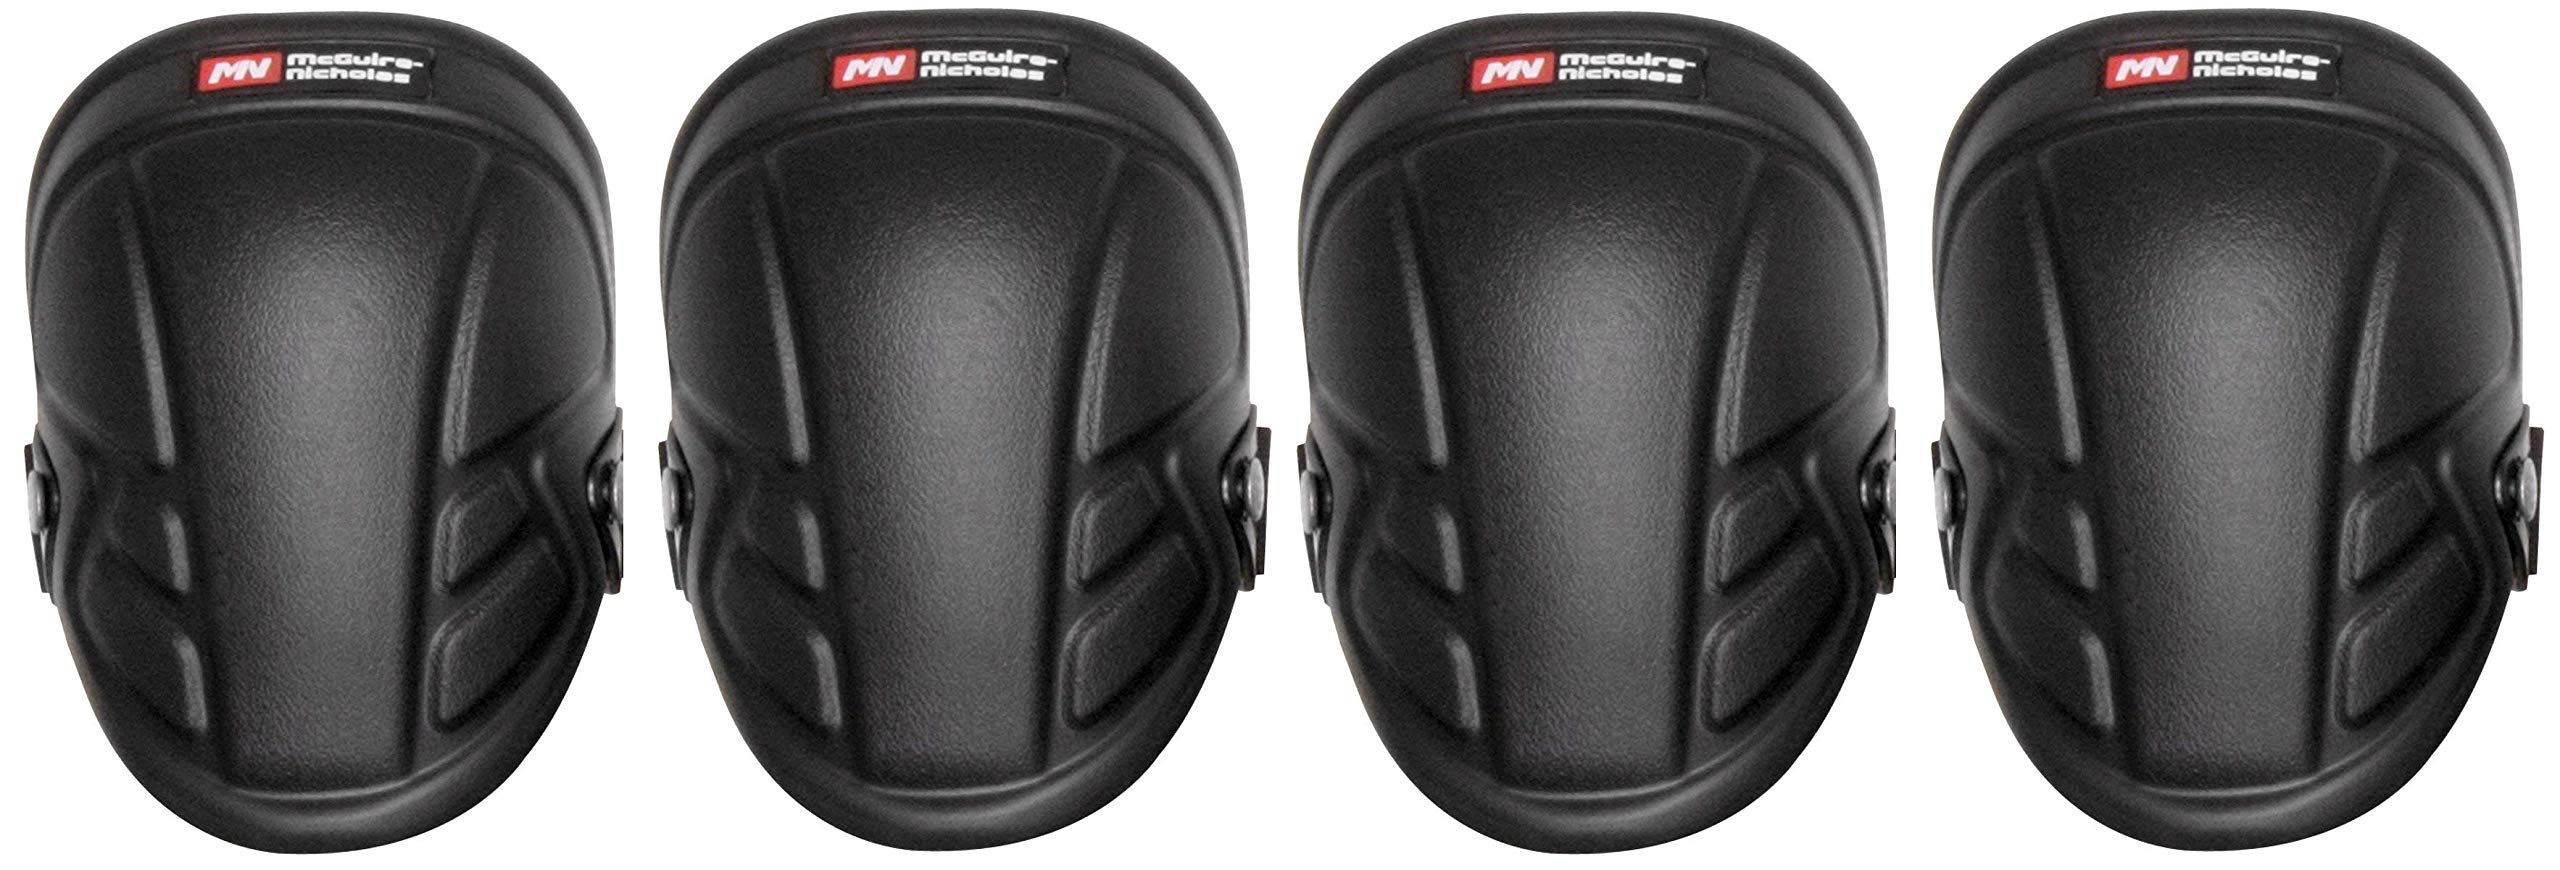 McGuire-Nicholas 1Mn-350 Tuff Shell Kneepads Heavy Duty Foam Padding For Construction, Gardening & Flooring (Fоur Paсk)